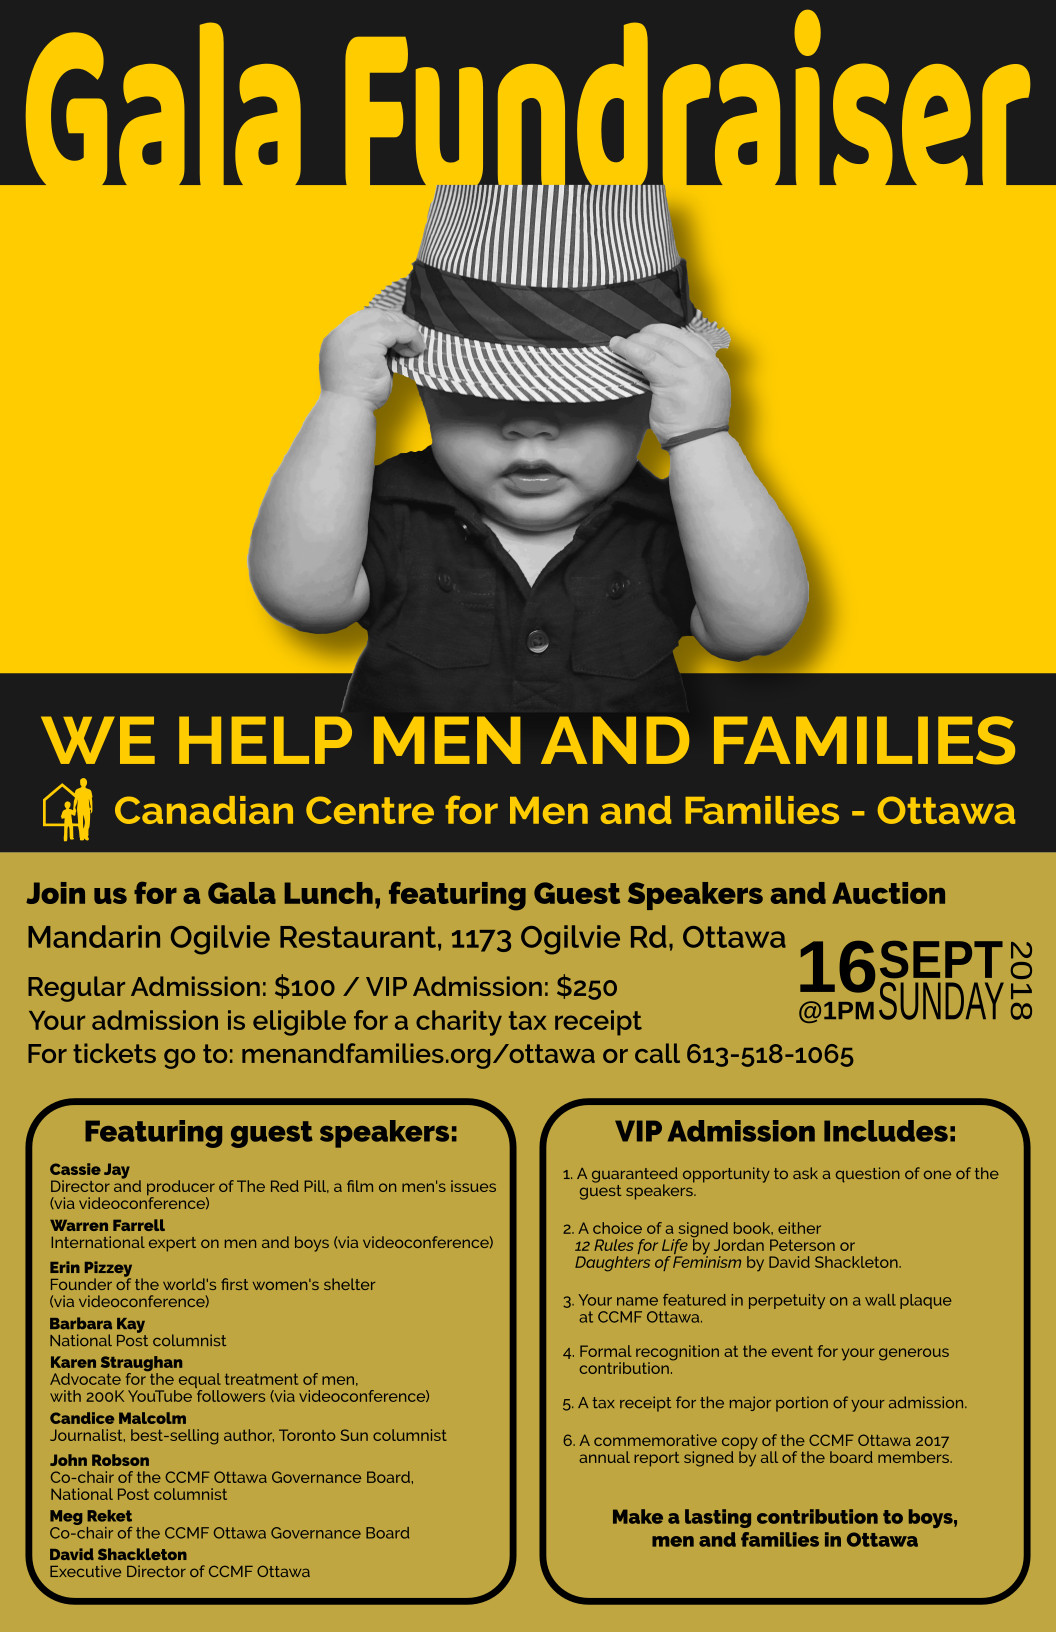 - The Canadian Centre for Men and Families - Ottawa Gala Luncheon is now set for Sept. 16 at 1 p.m. with a great lineup of speakers and an auction.The CCMF-O, a hub for the health and well-being of boys, men, fathers and families, needs your contribution to continue providing services, including referral, to men and boys in difficulty or in crisis in Ottawa.I hope to see you there: tickets are available here.